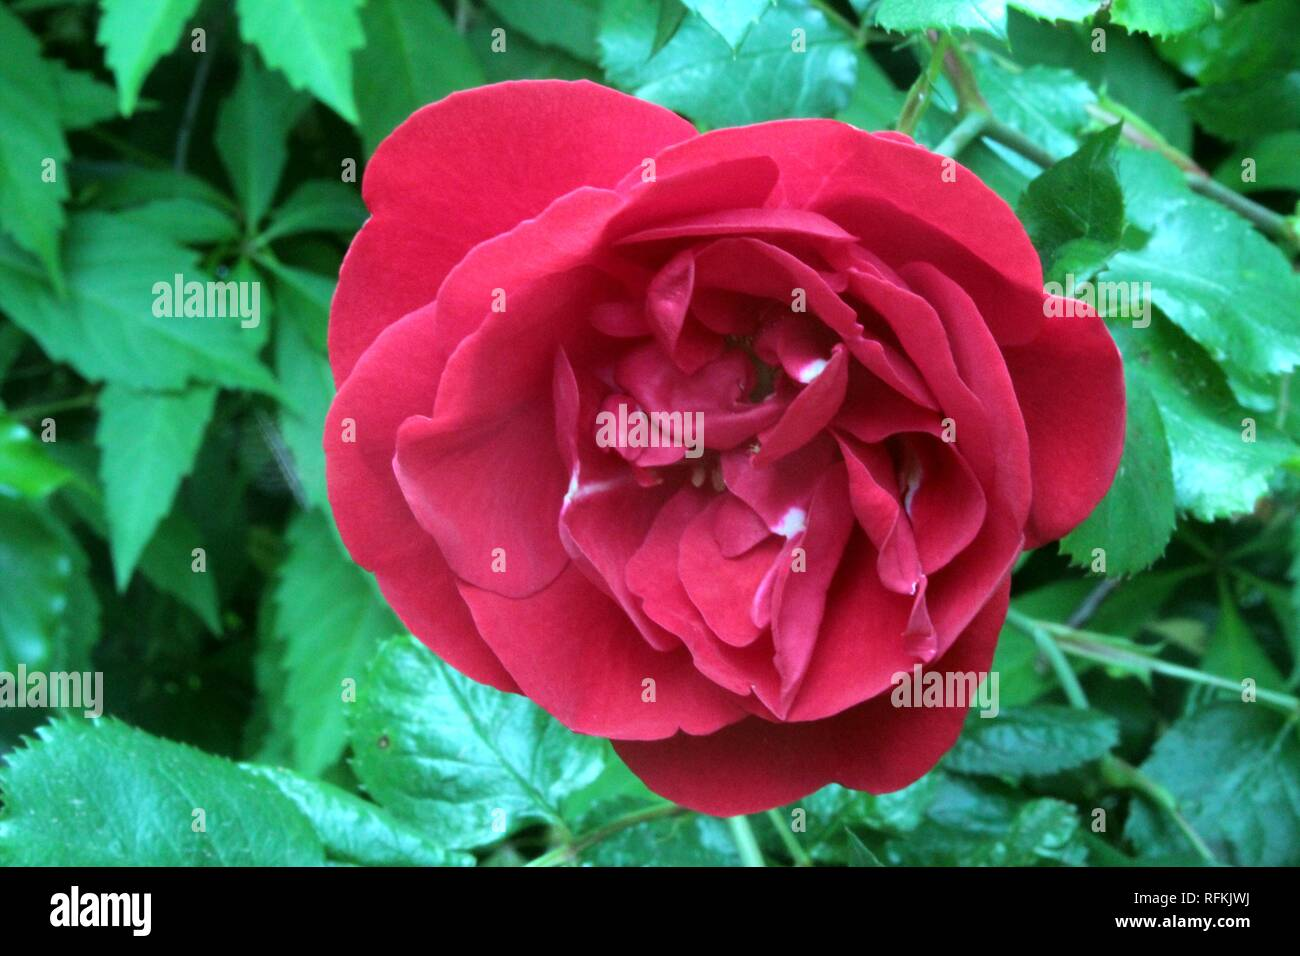 A red Flower of a Garden Rose - Stock Image